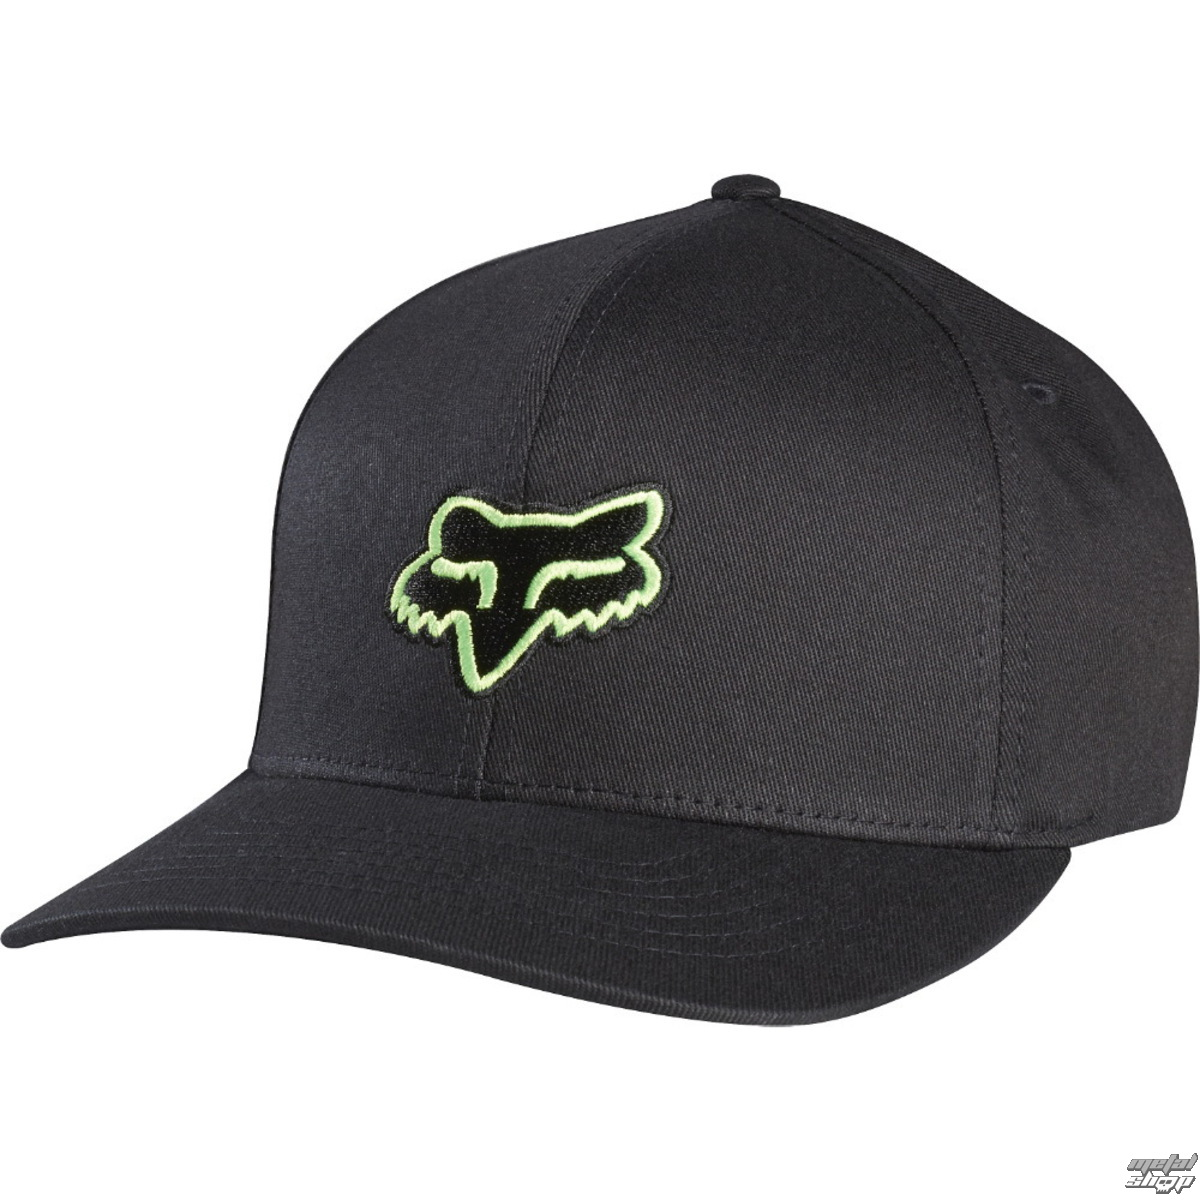 kšiltovka FOX - Legacy - Black/Green - 58225-151